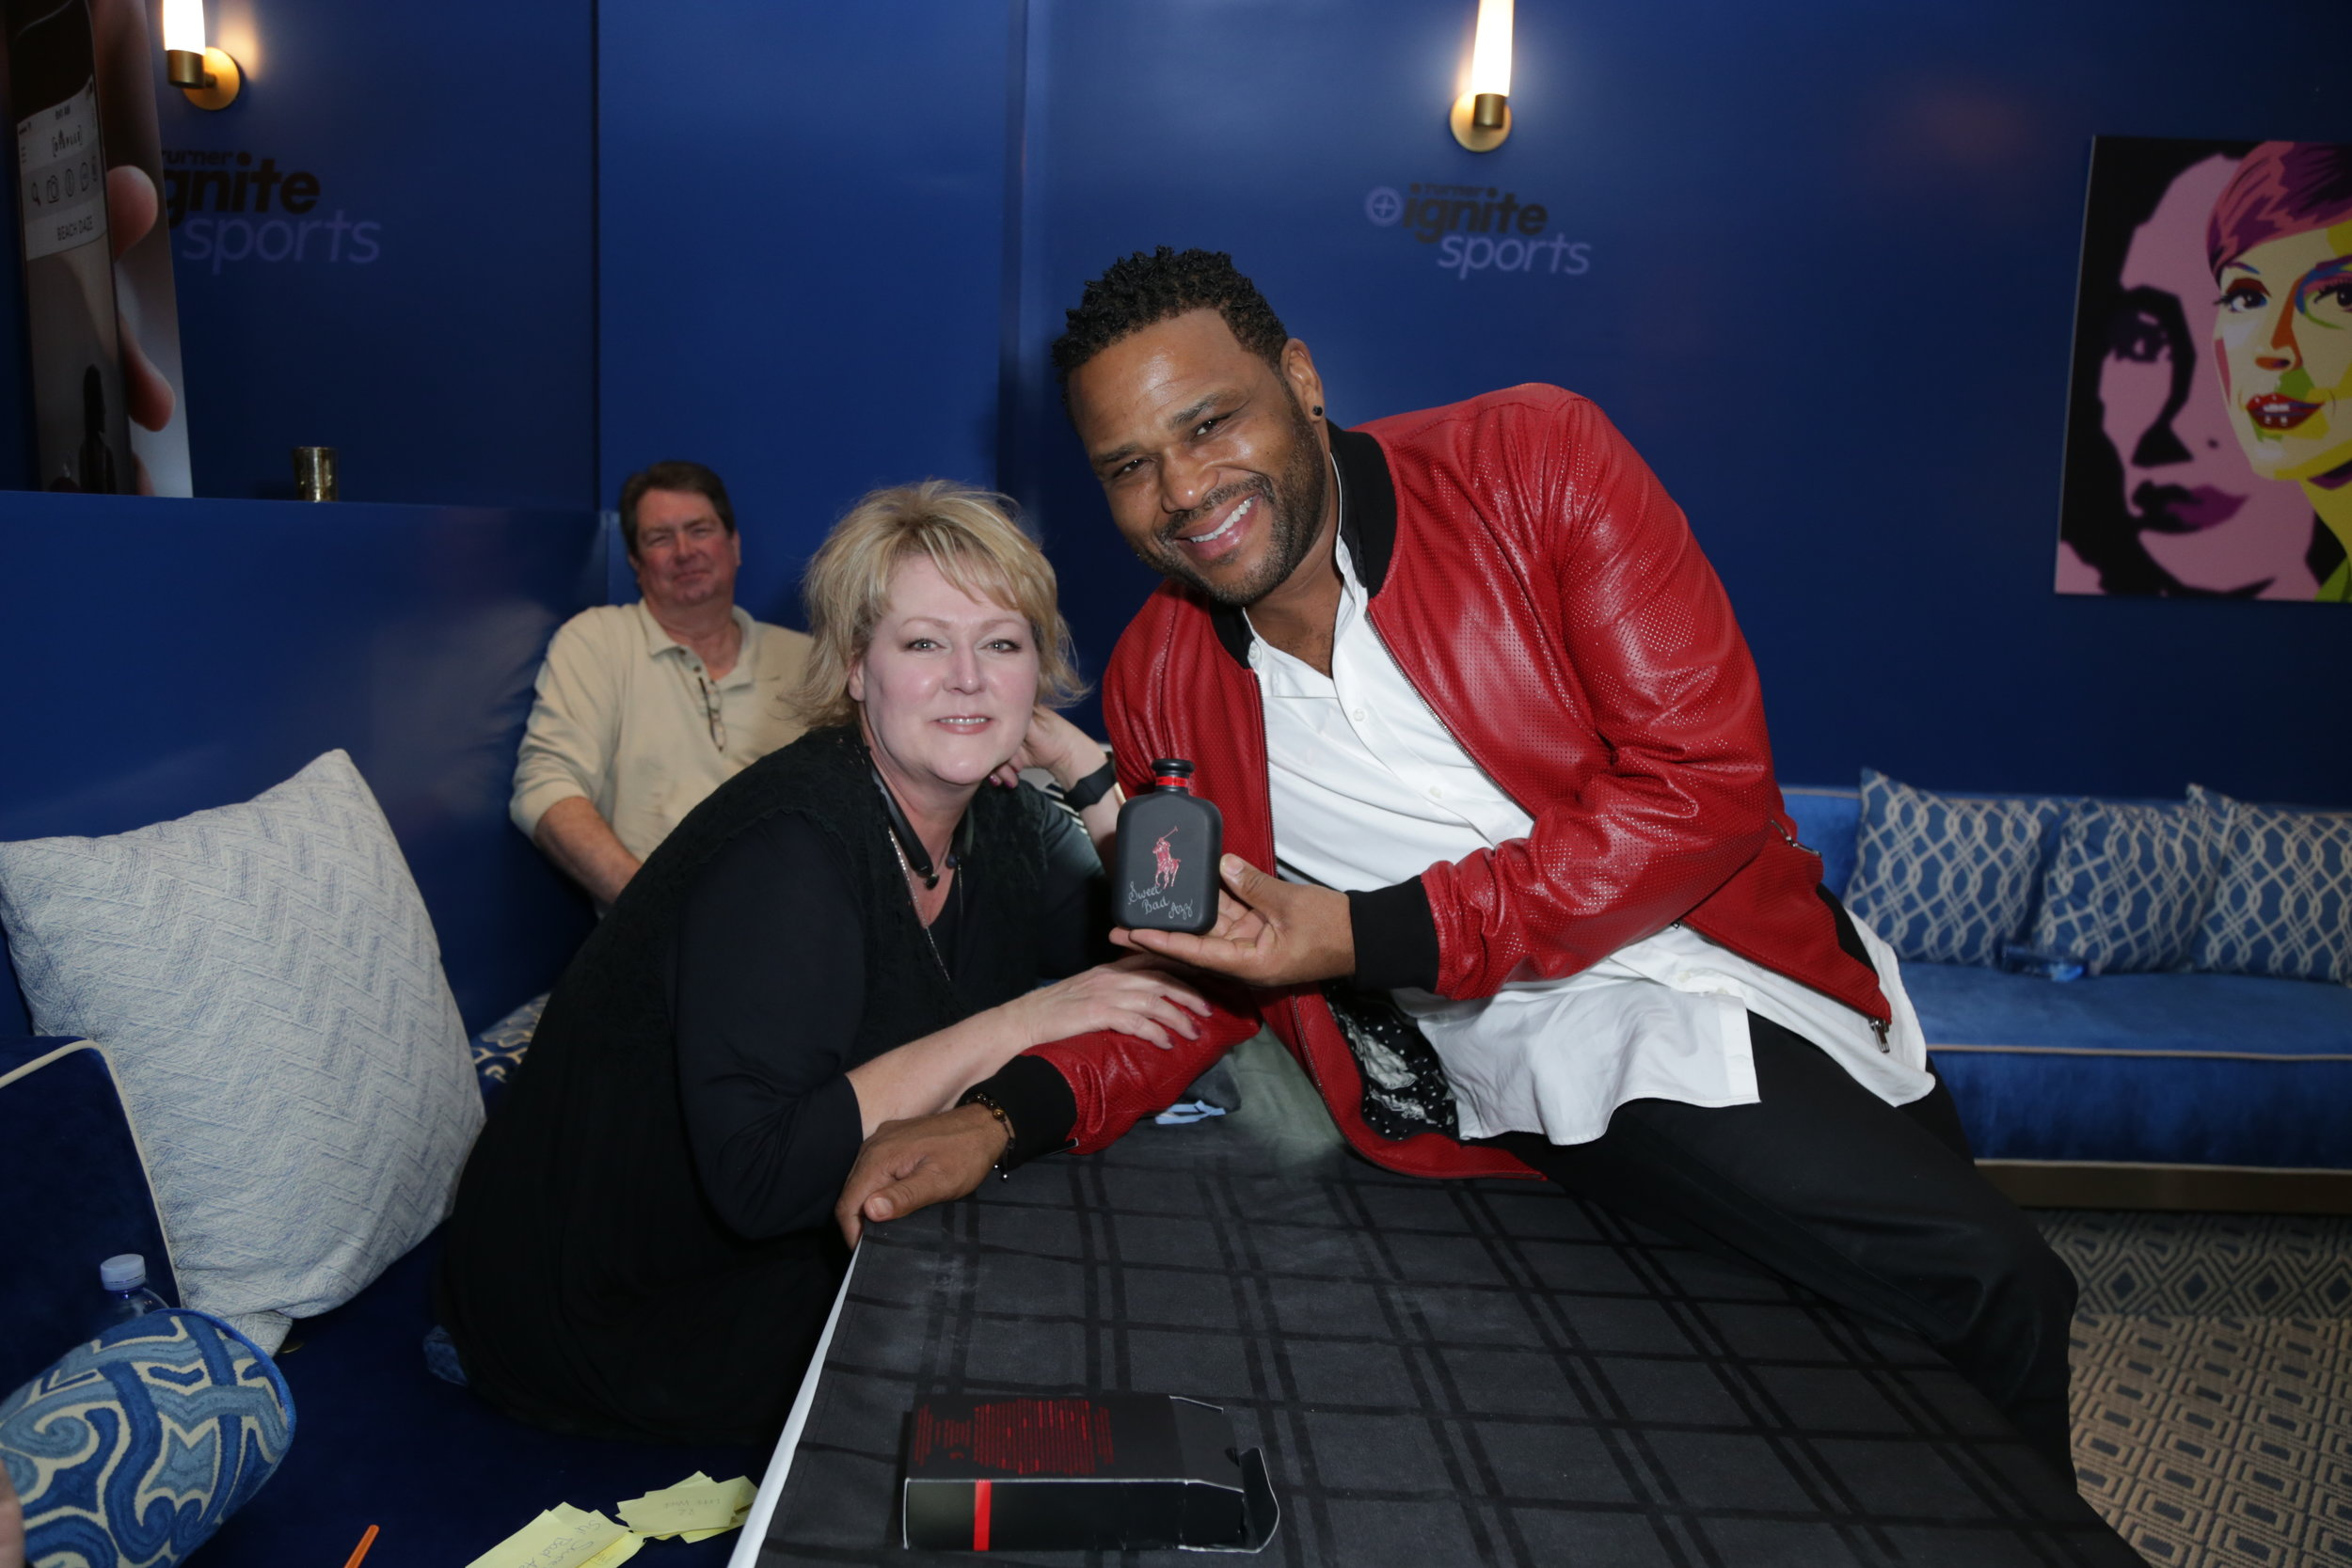 Anthony Anderson at Turner Ignite Sports Luxury Lounge in Houston